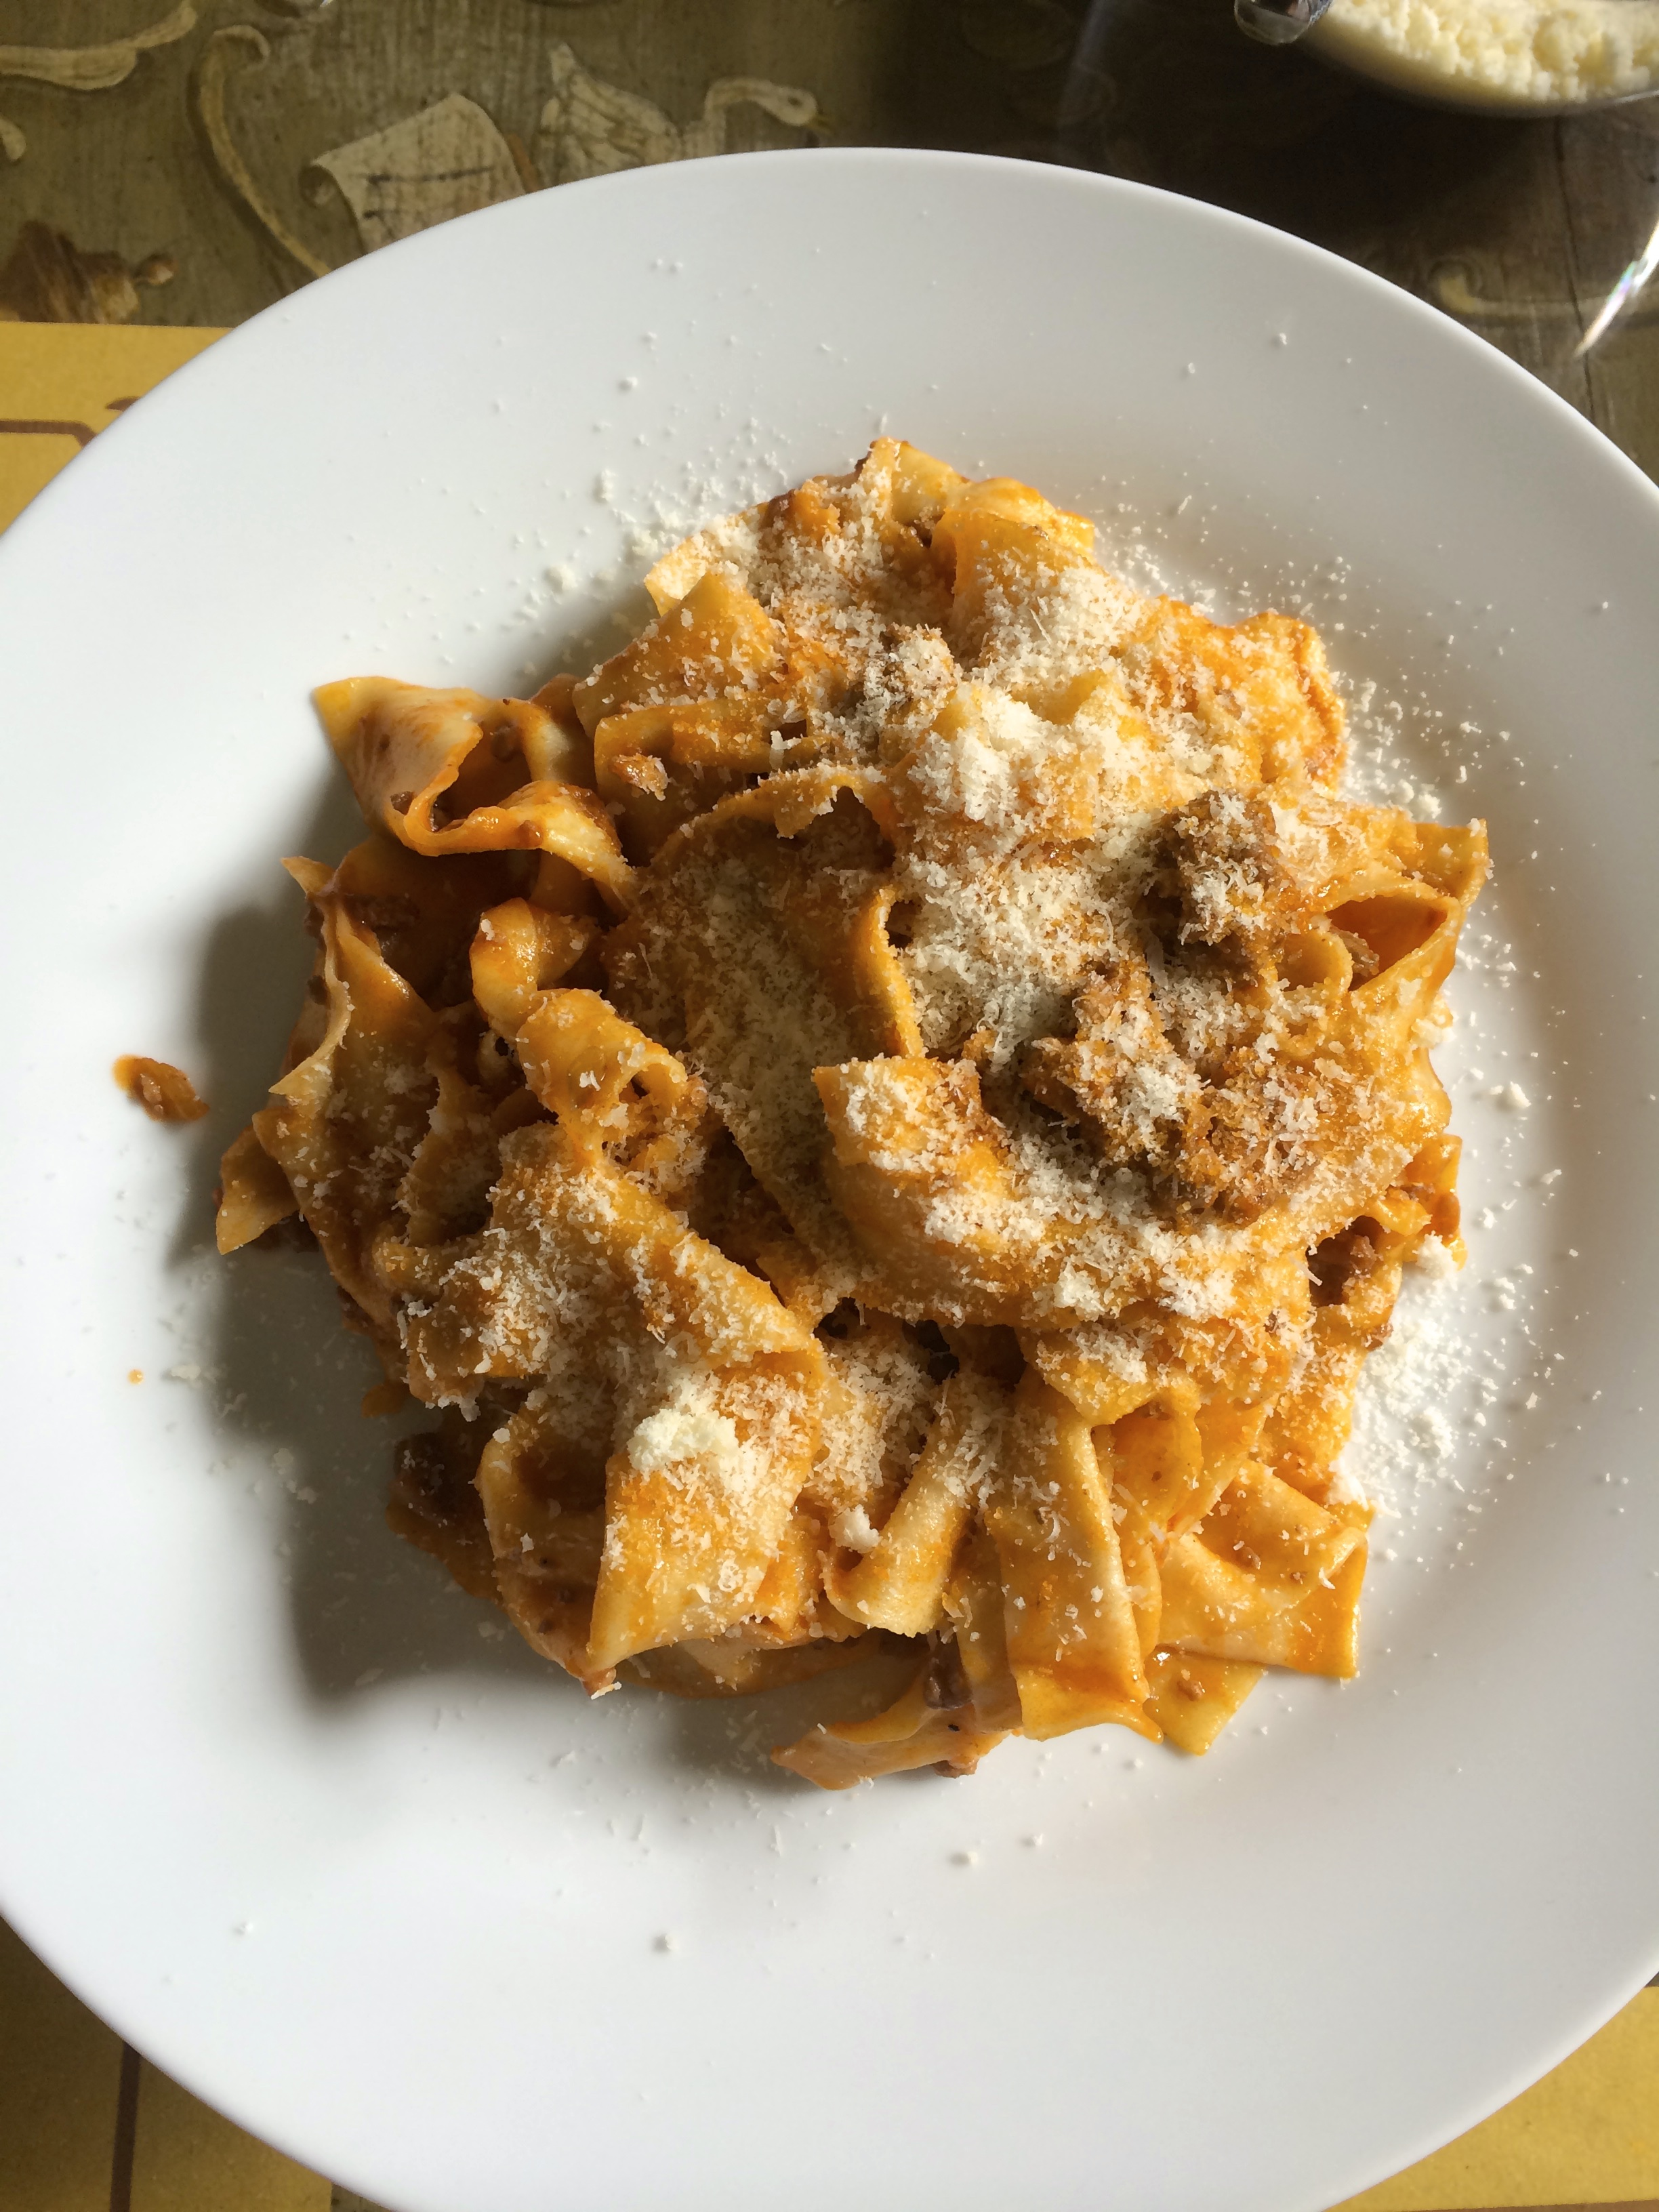 Homemade pasta and bolognese